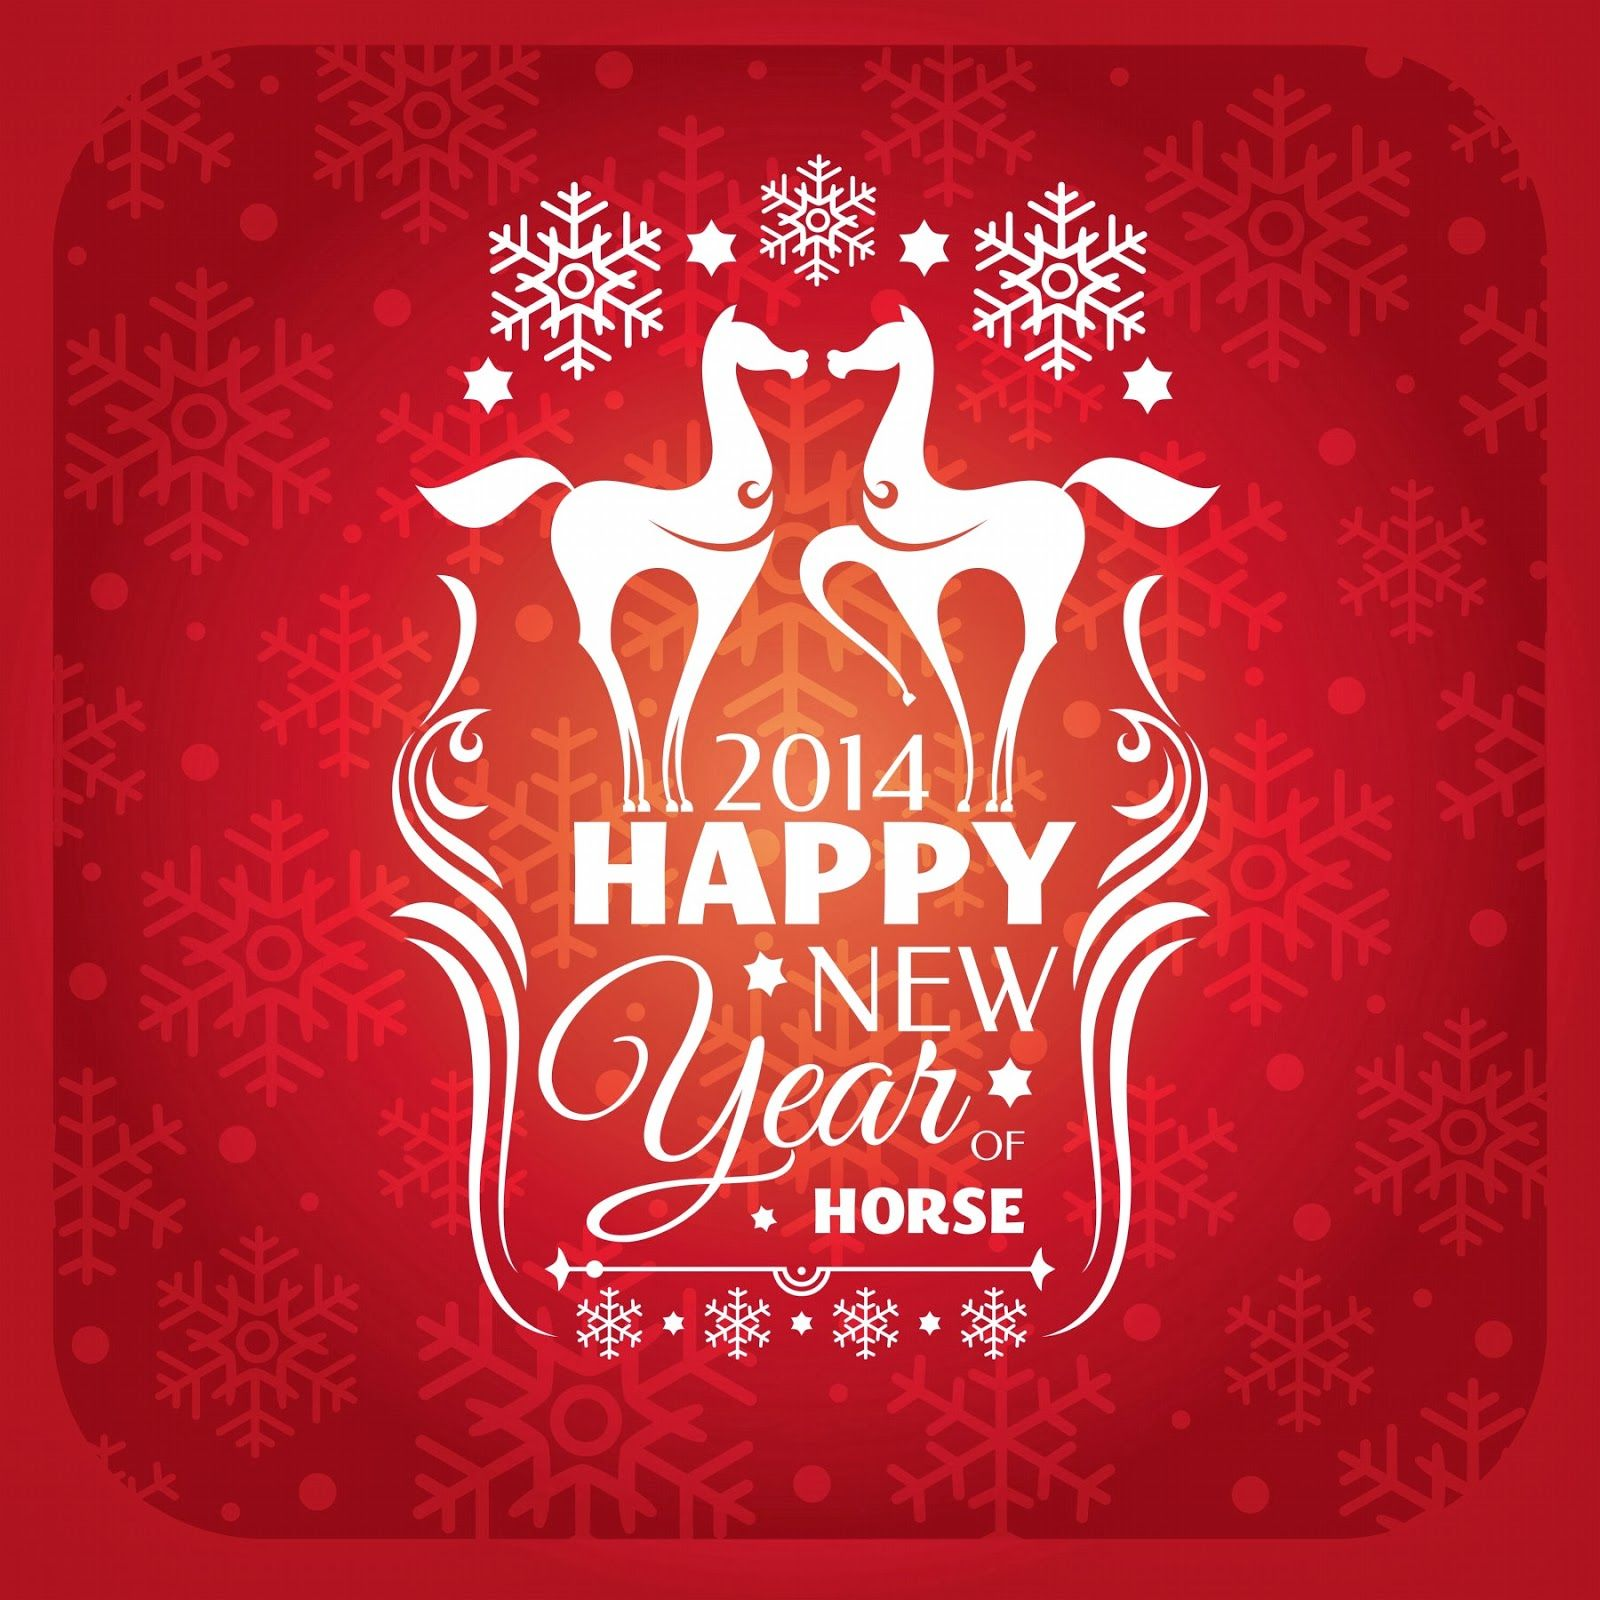 Happy New Year Of The Horse Horse Rider Sayings Pinterest